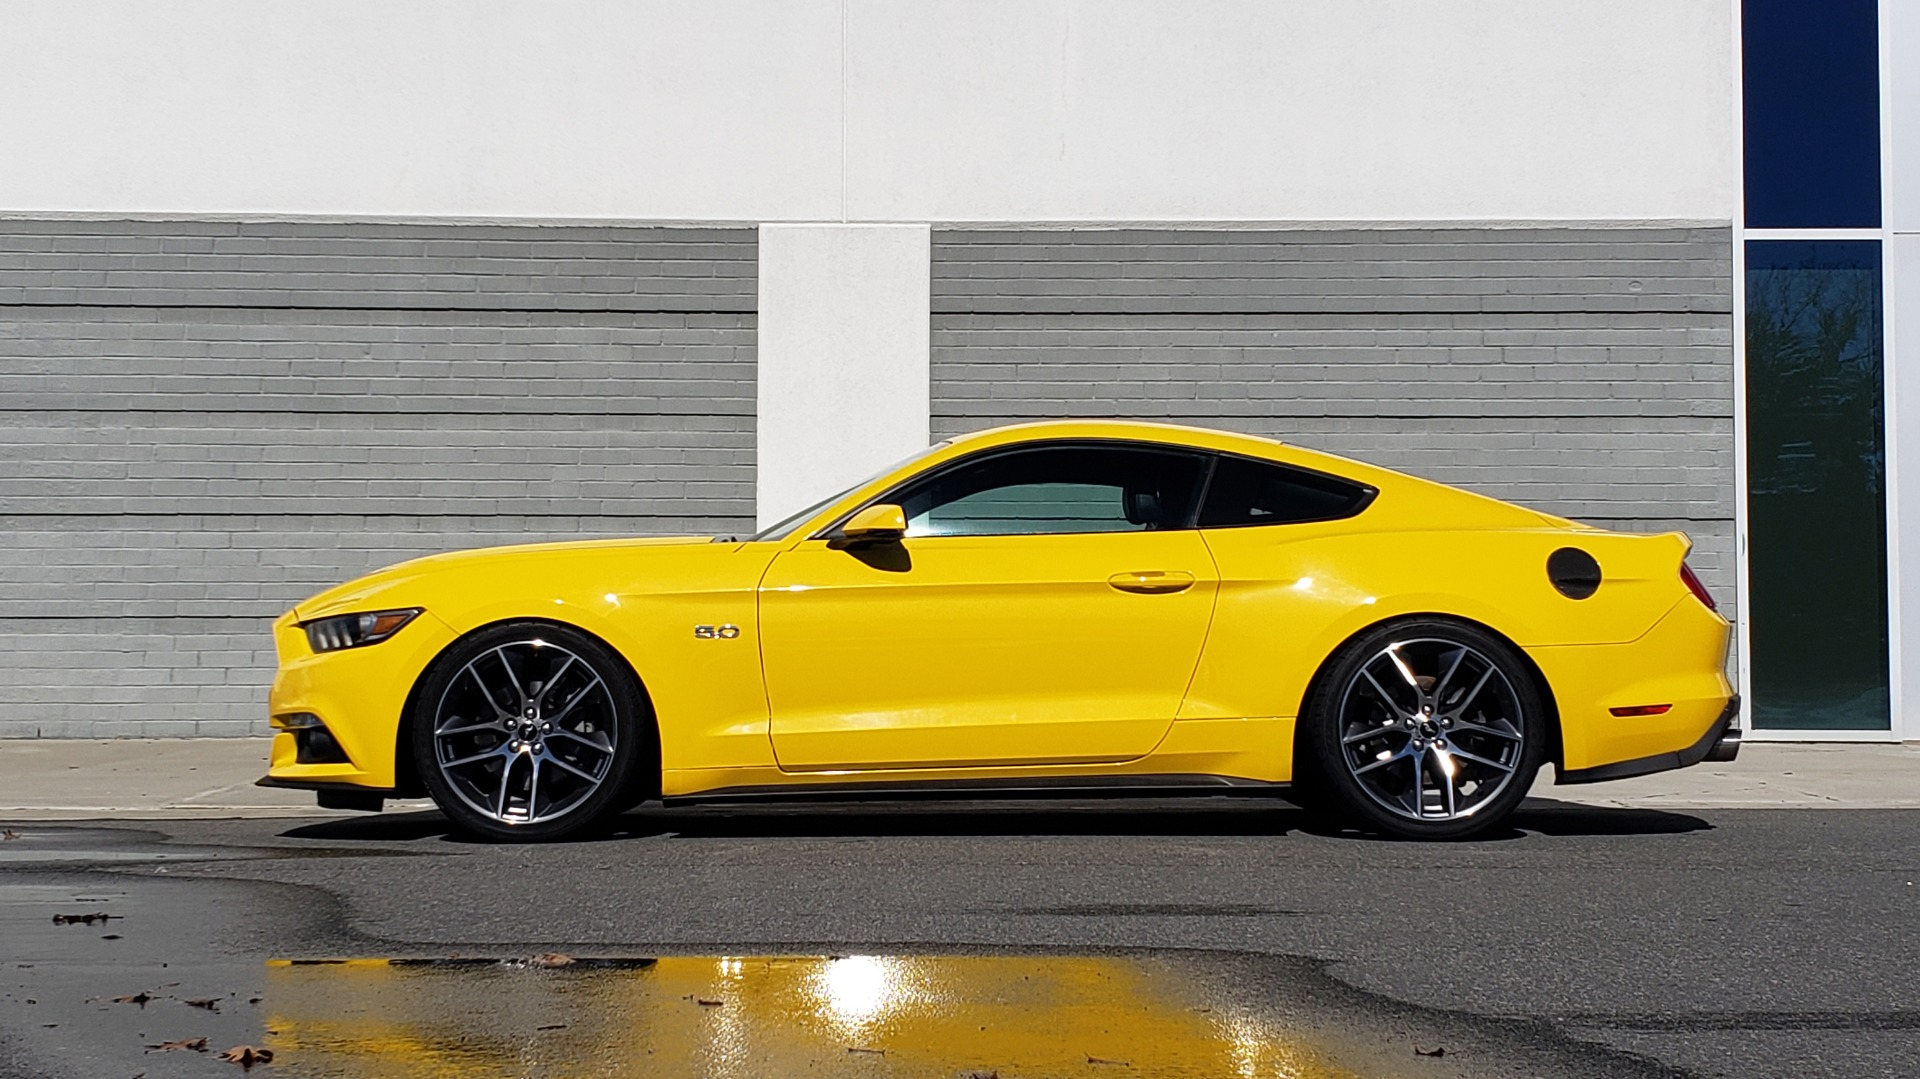 Used 2015 Ford MUSTANG GT 5.0L COUPE PREMIUM / 6-SPD MAN / SHAKER AUDIO / NAV for sale Sold at Formula Imports in Charlotte NC 28227 4